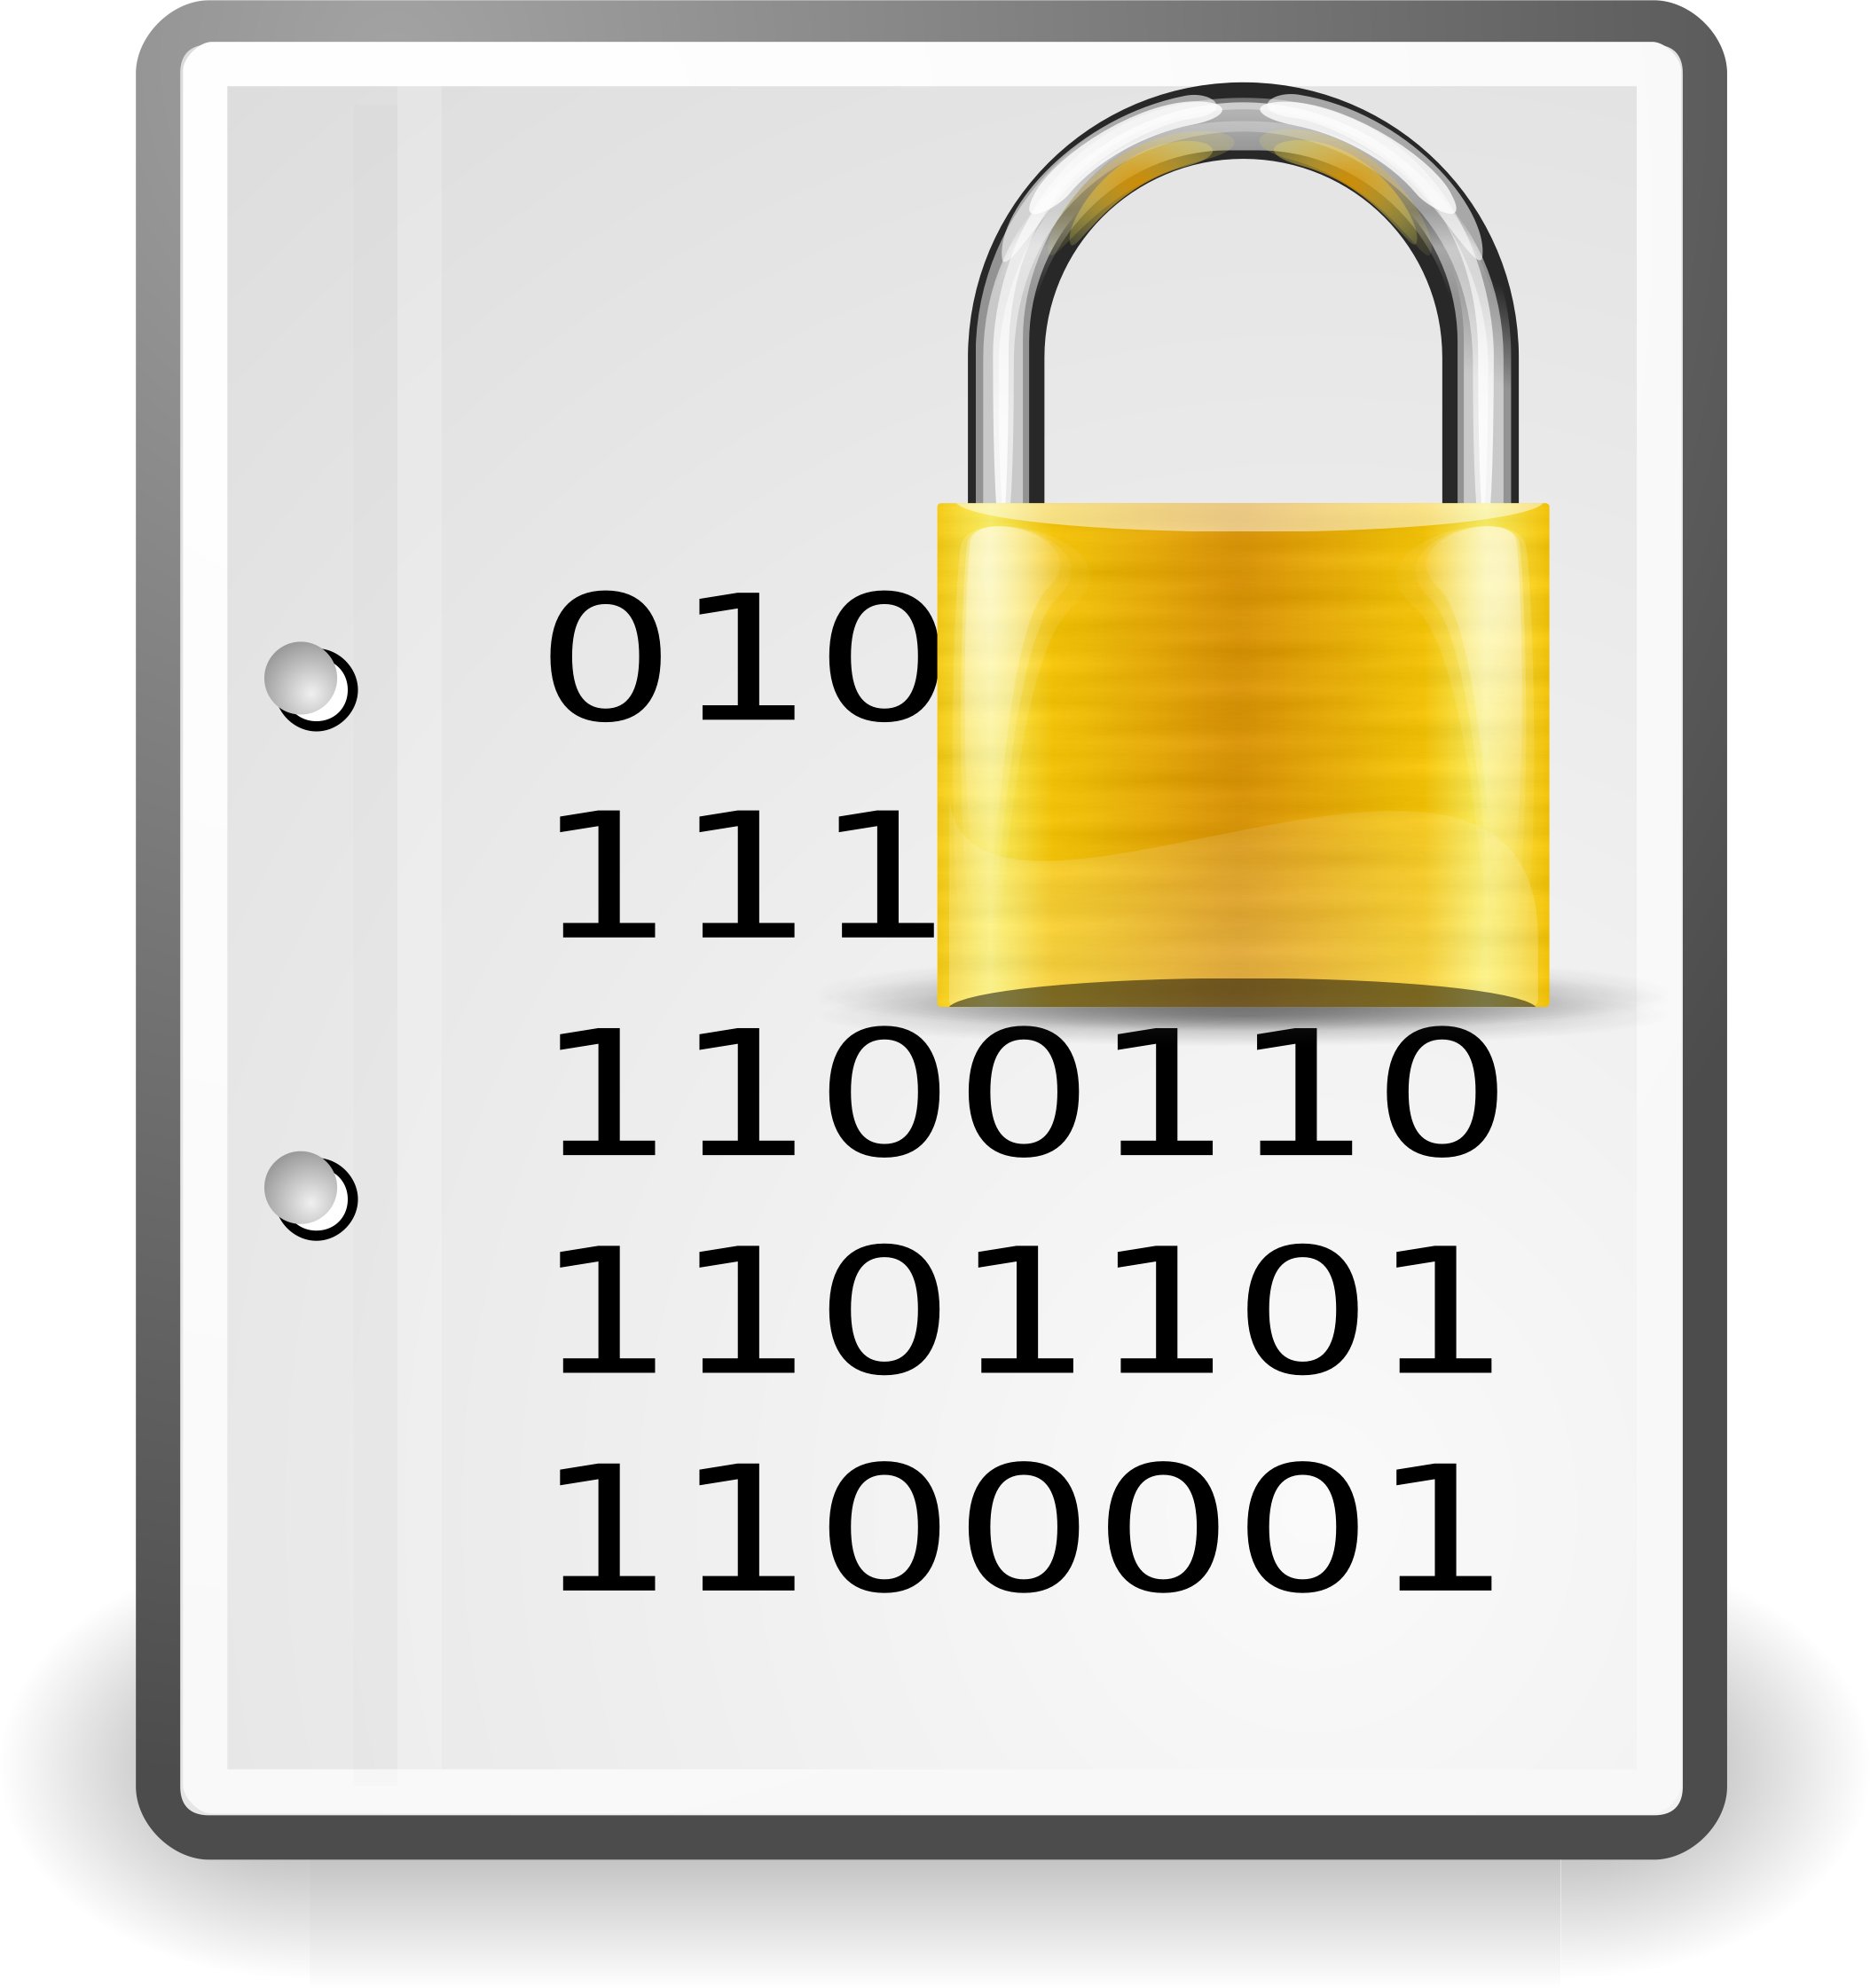 Document clipart generic. Encrypted gold big image